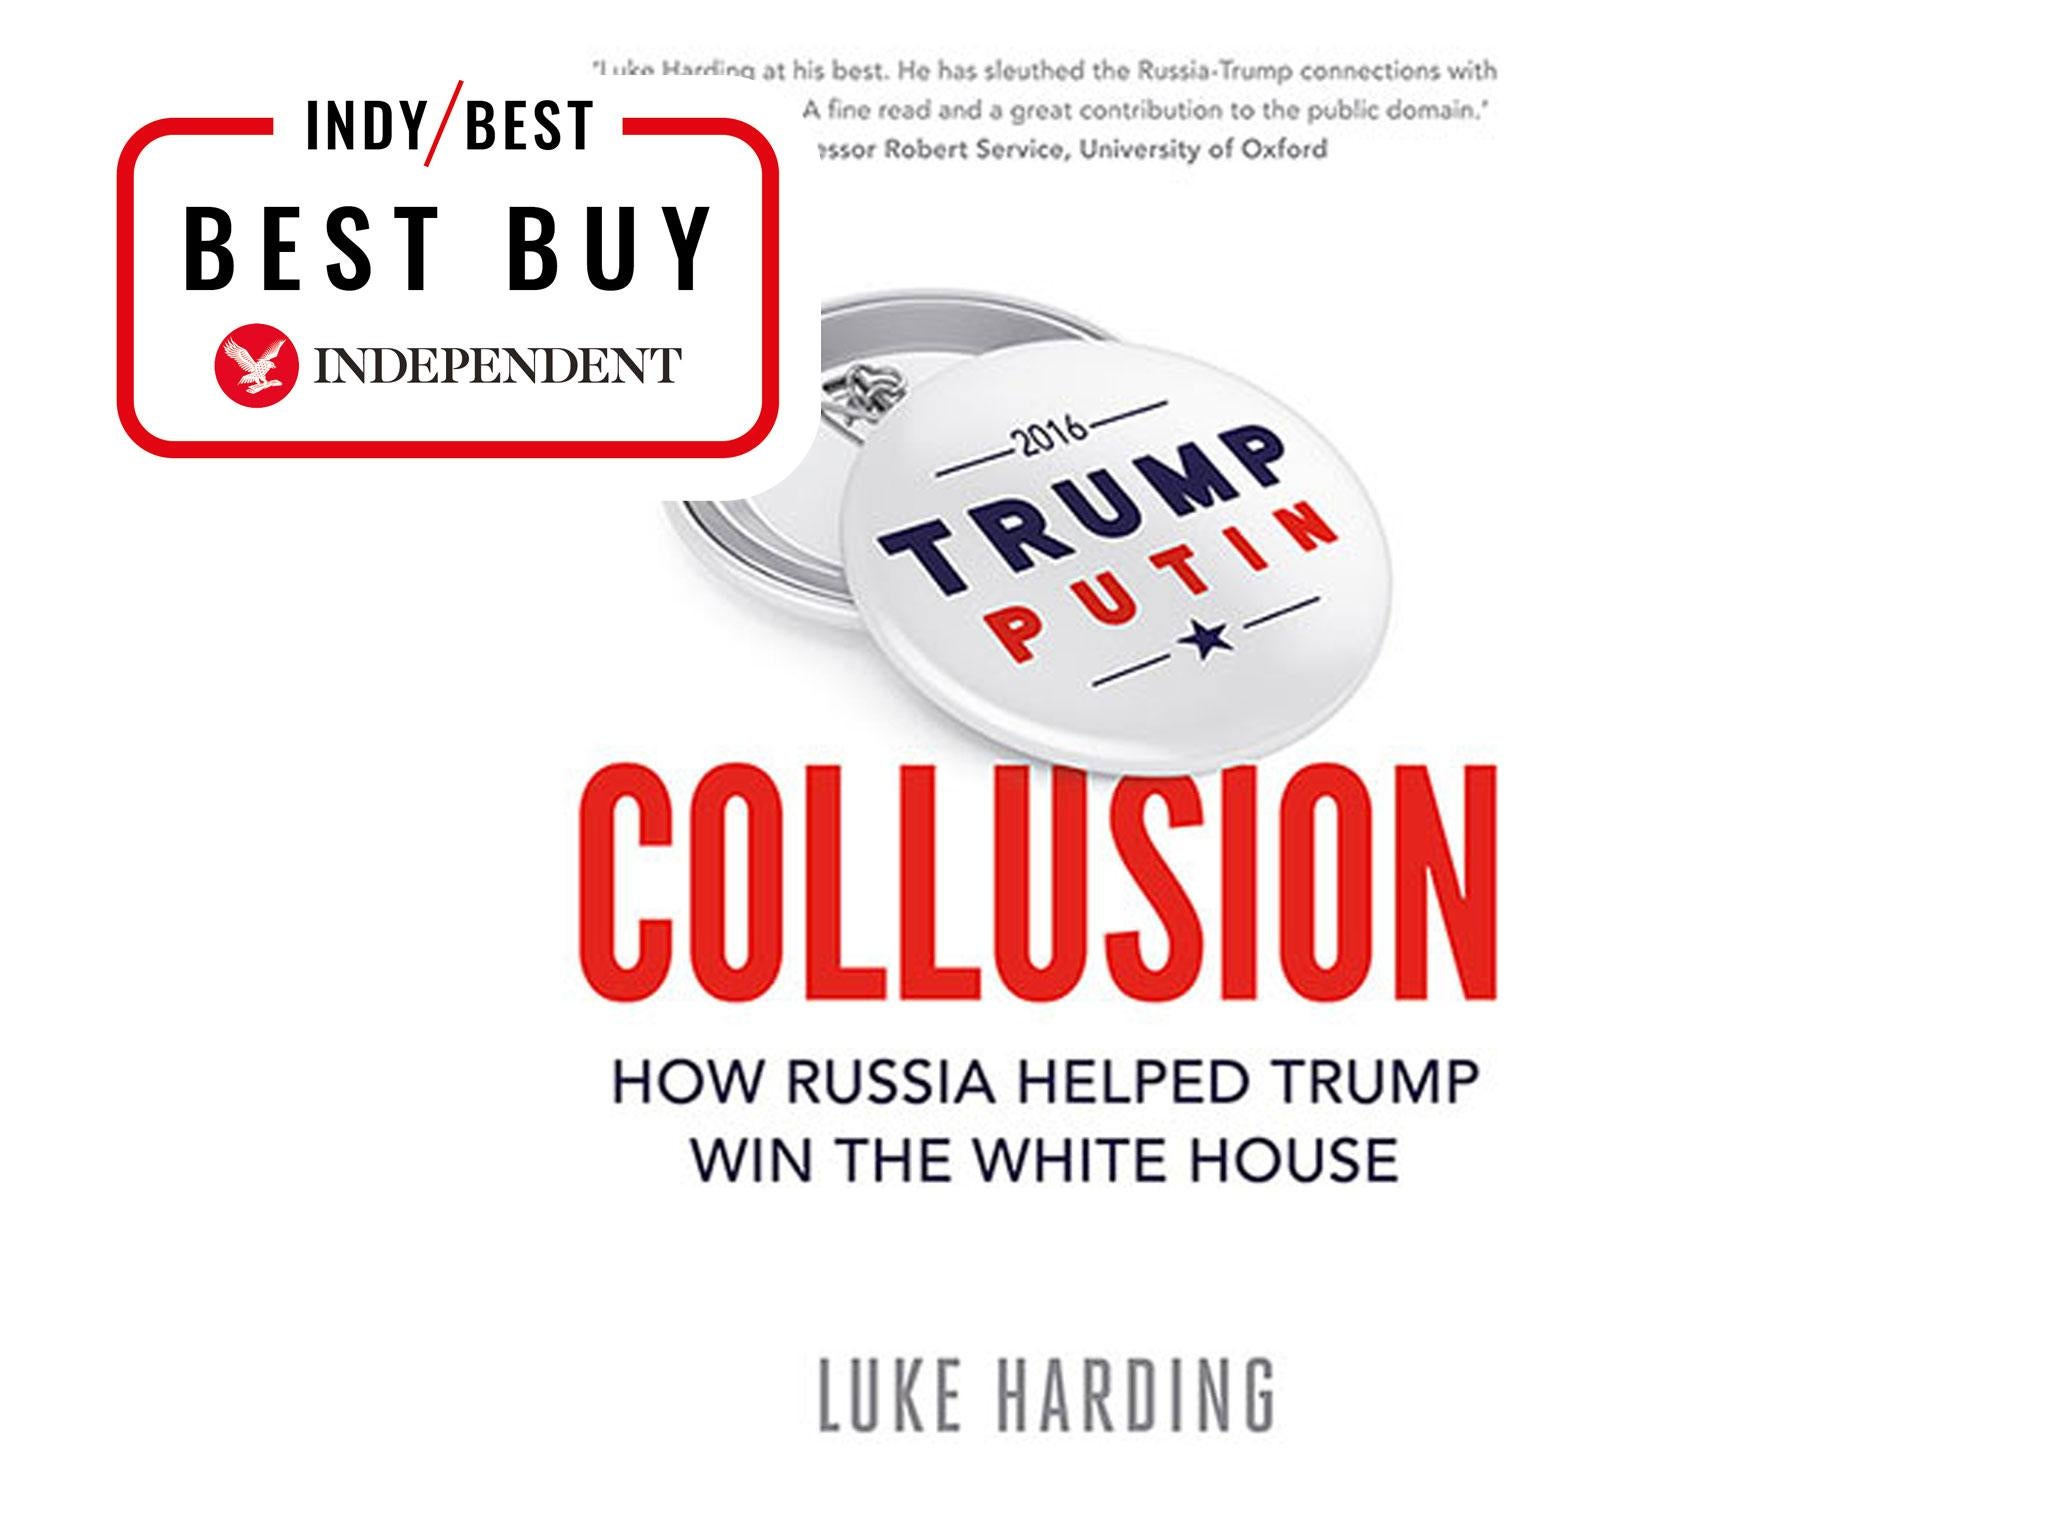 a0b7456b03f0 10 best books on the Donald Trump presidency   The Independent